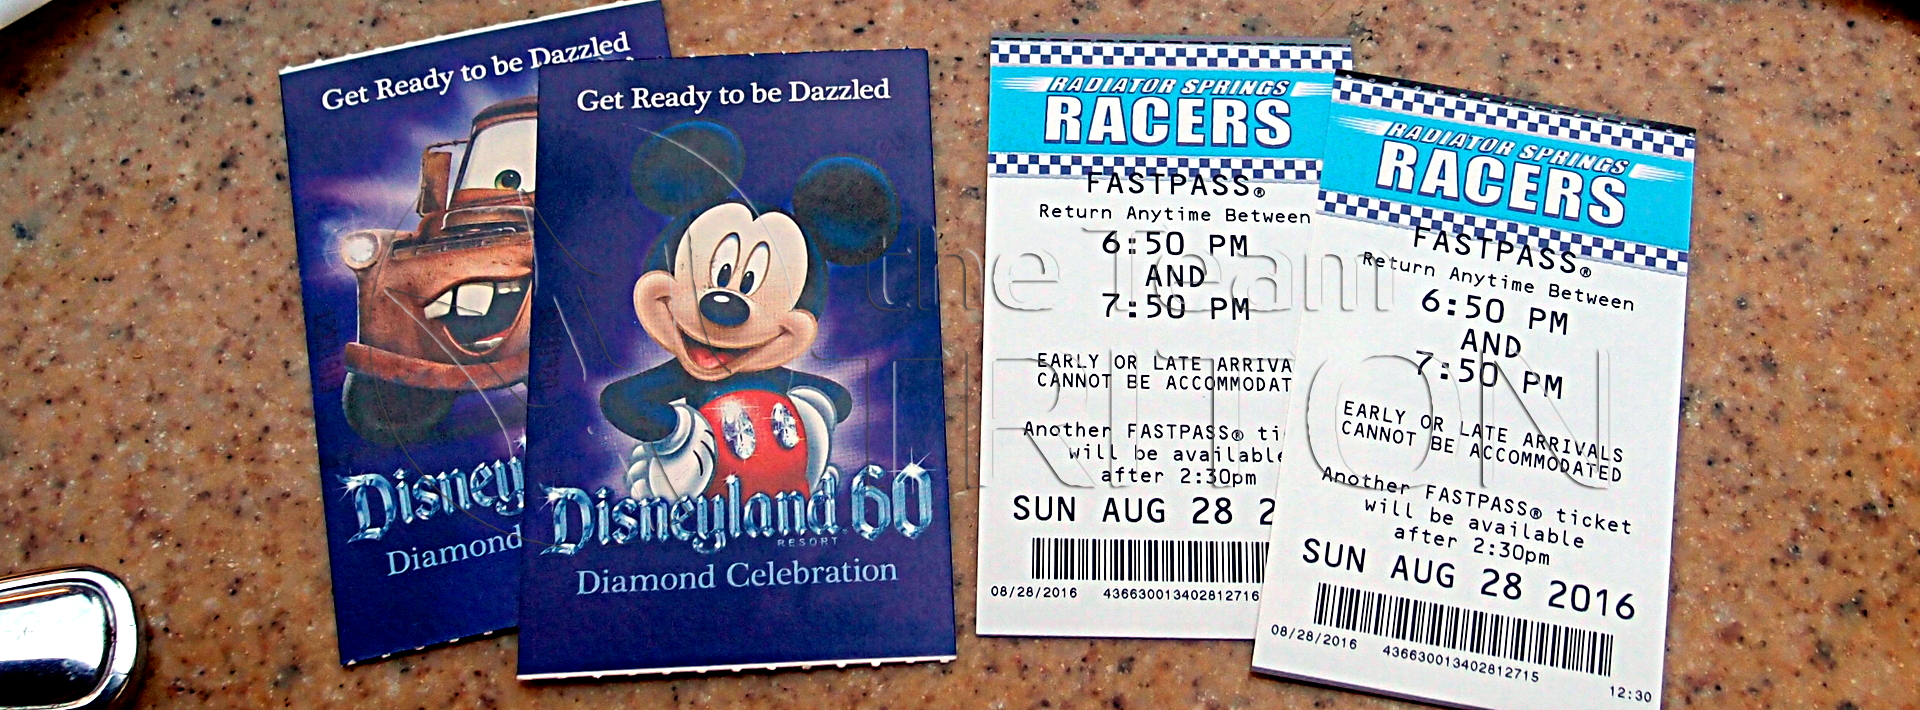 DL-fastpass-60th-001